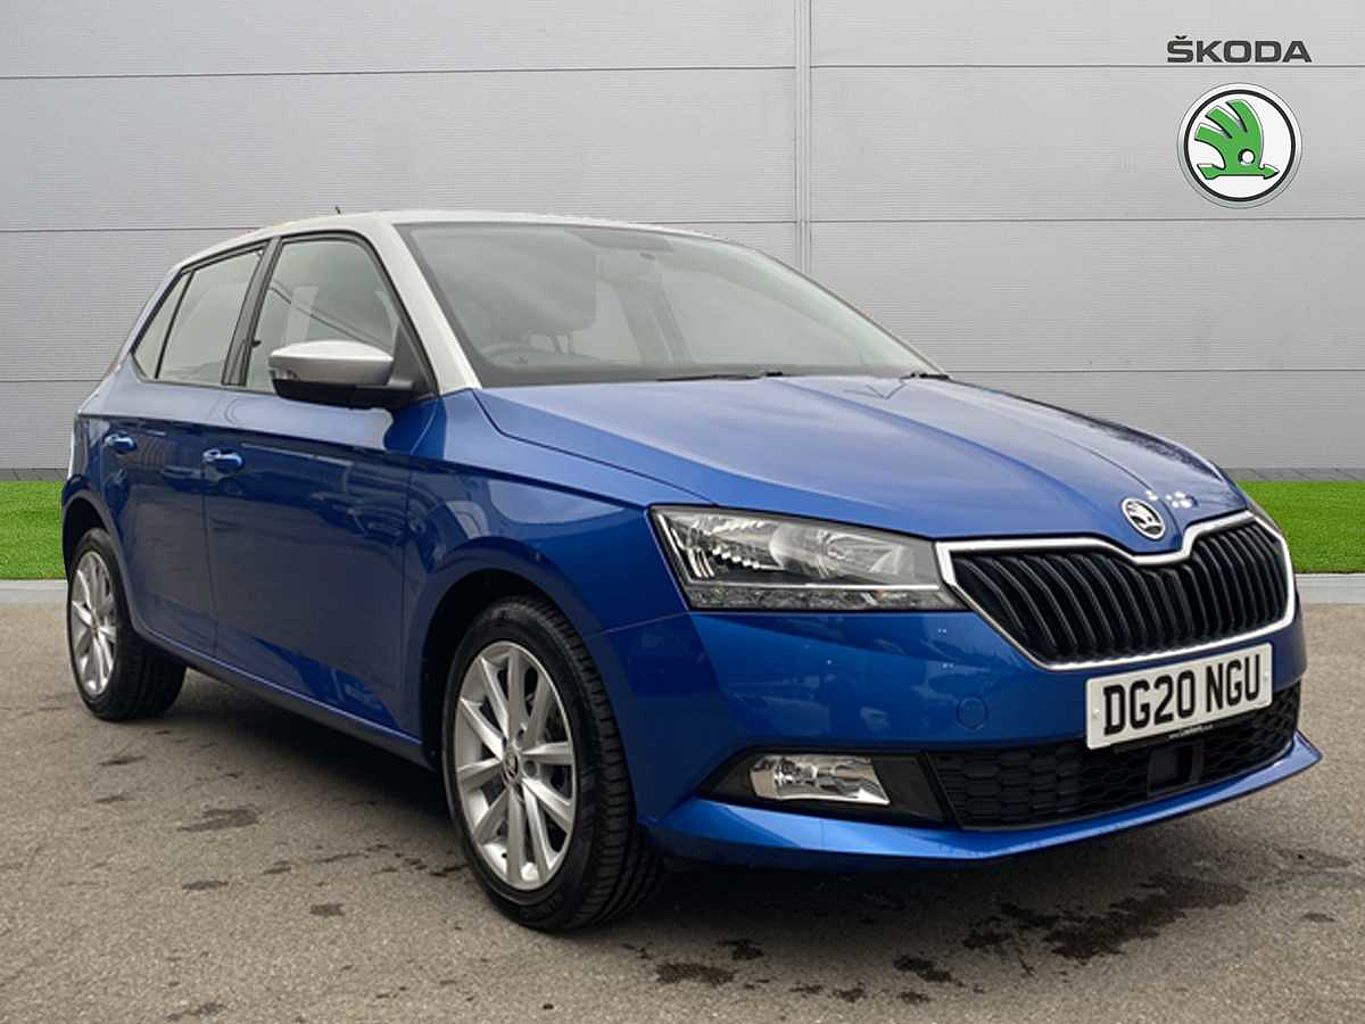 SKODA Fabia 1.0 TSI Colour Edition 5dr